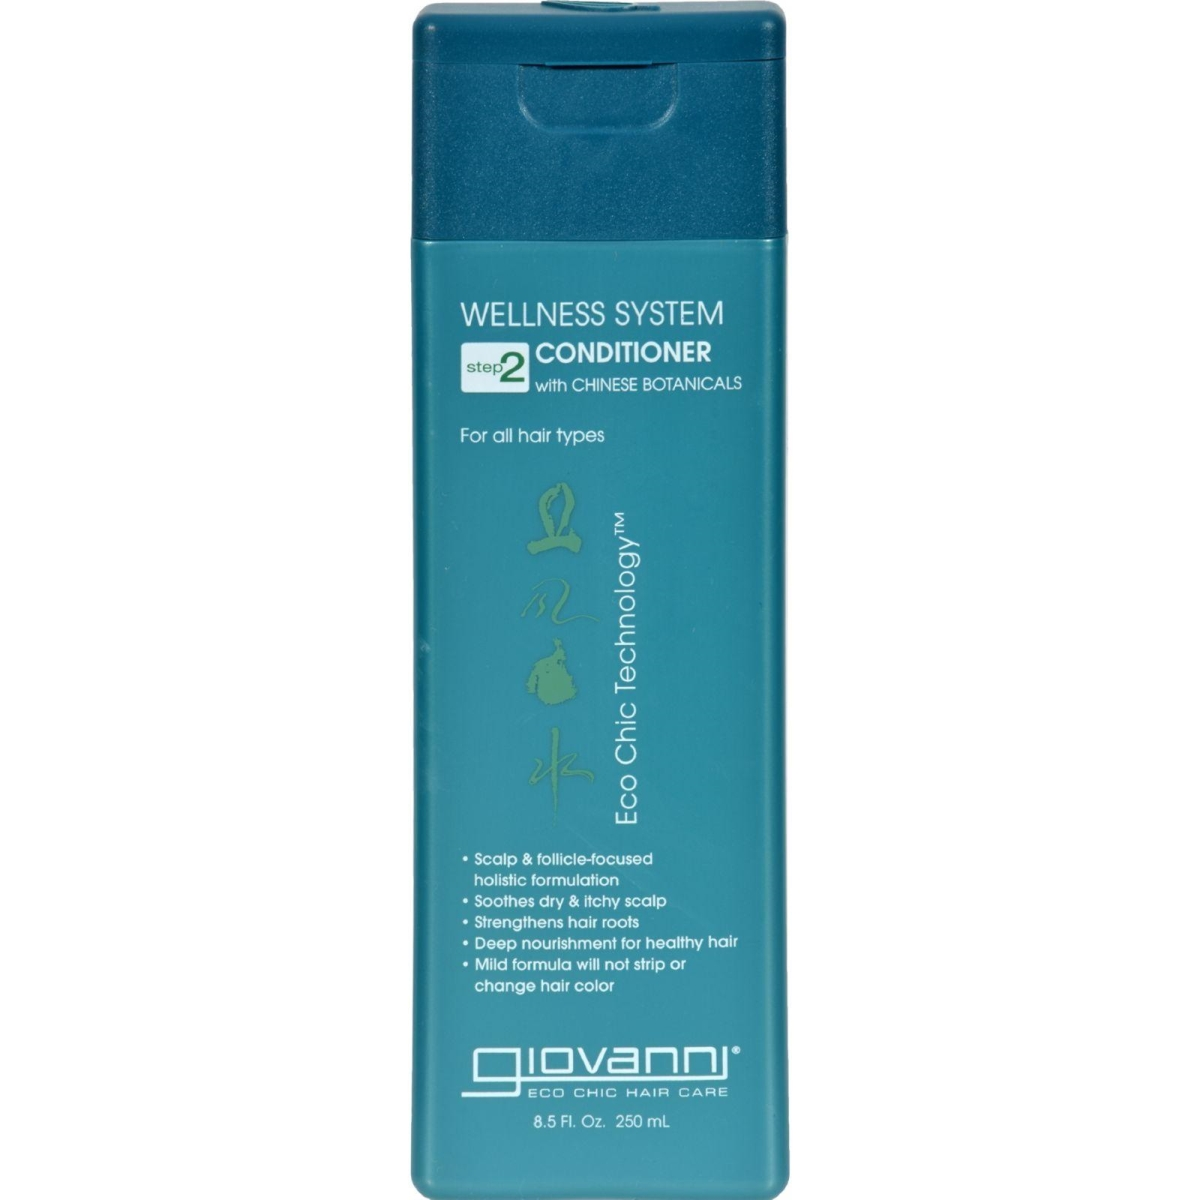 Giovanni Hair Care Products HG0570747 8.5 fl oz Wellness System Step 2 Conditioner with Chinese Botanicals